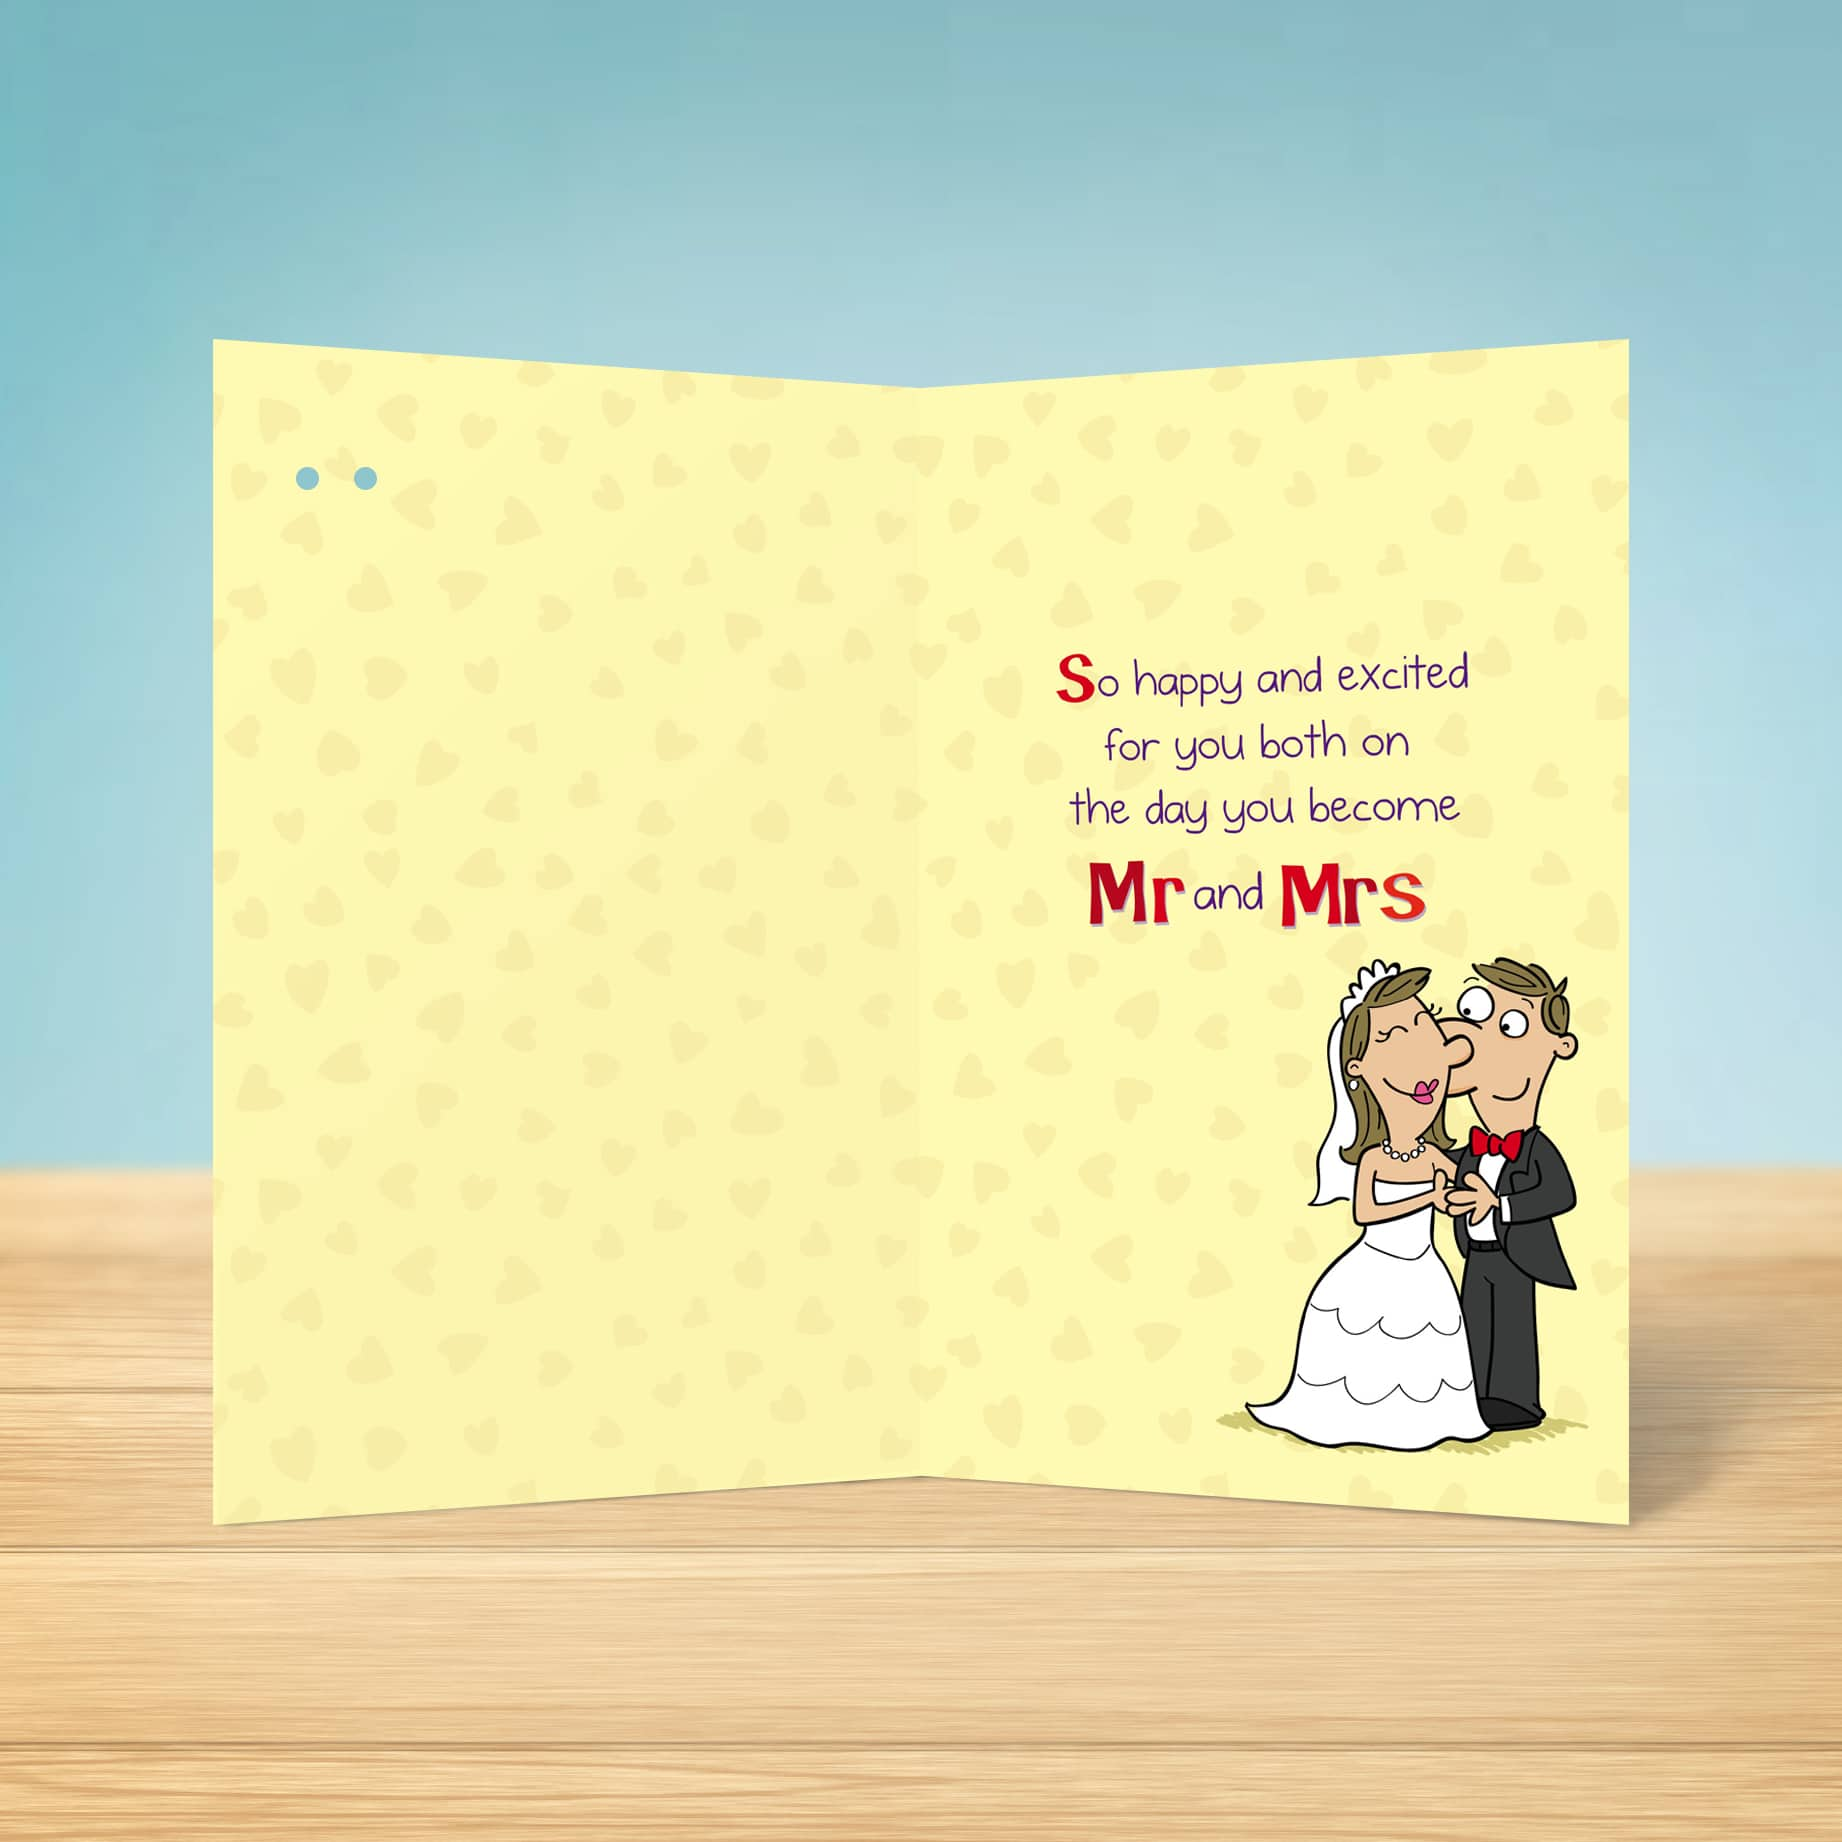 Wedding Card Facebook Status Wedding Garlanna Greeting Cards